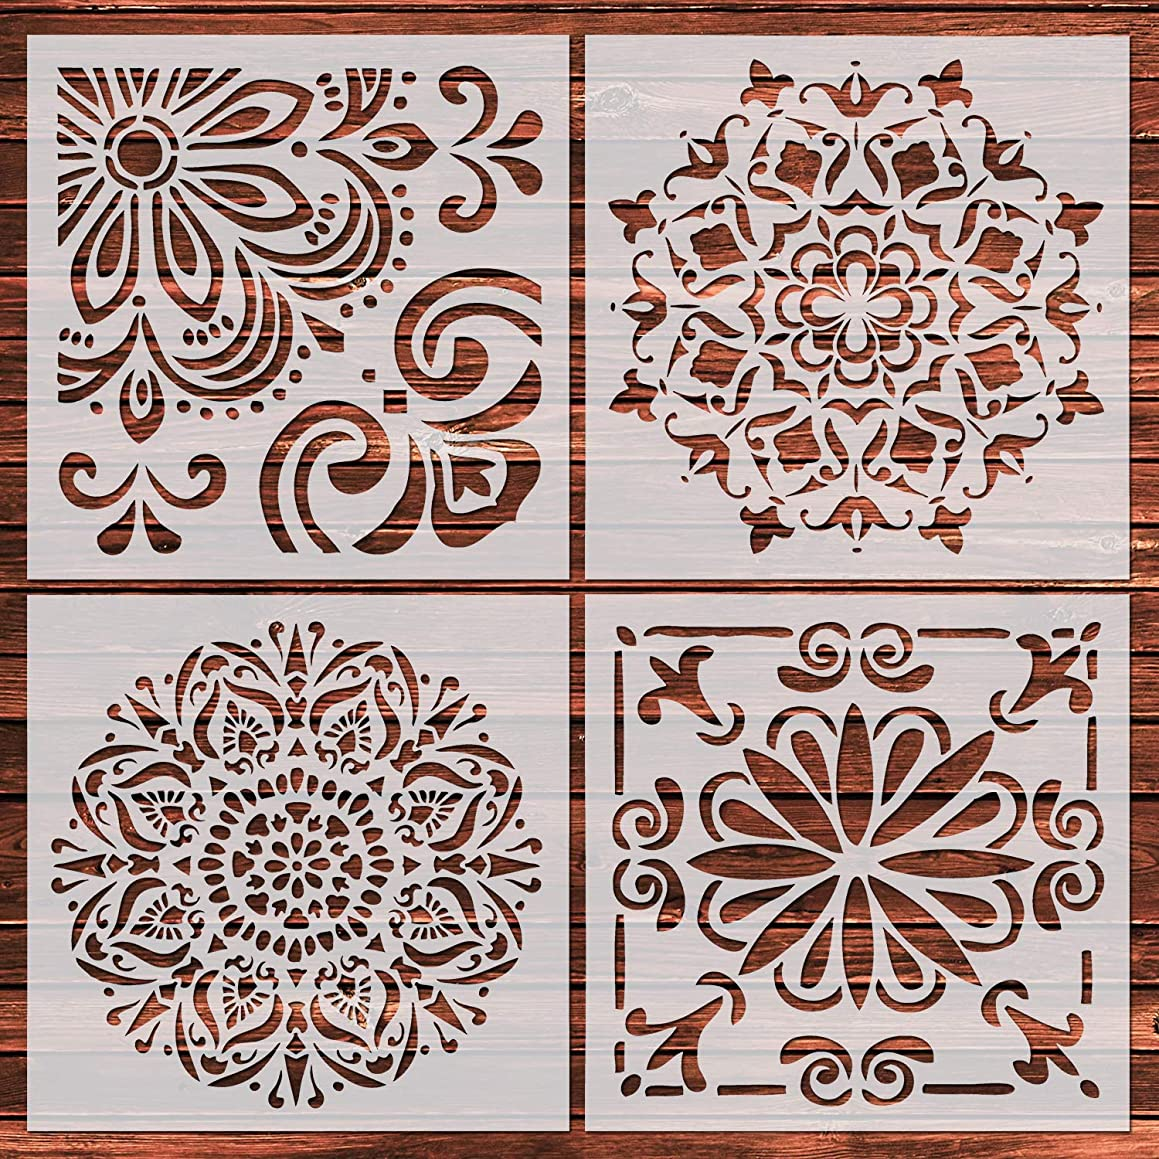 YUEAON 4 Pack Large Reusable Flower Mandala Floor Wall Stencil Vinyl (12 x 12 inch) Painting Stencil, Laser Cut Painting Template Tile Fabric Wood Stone Stencils